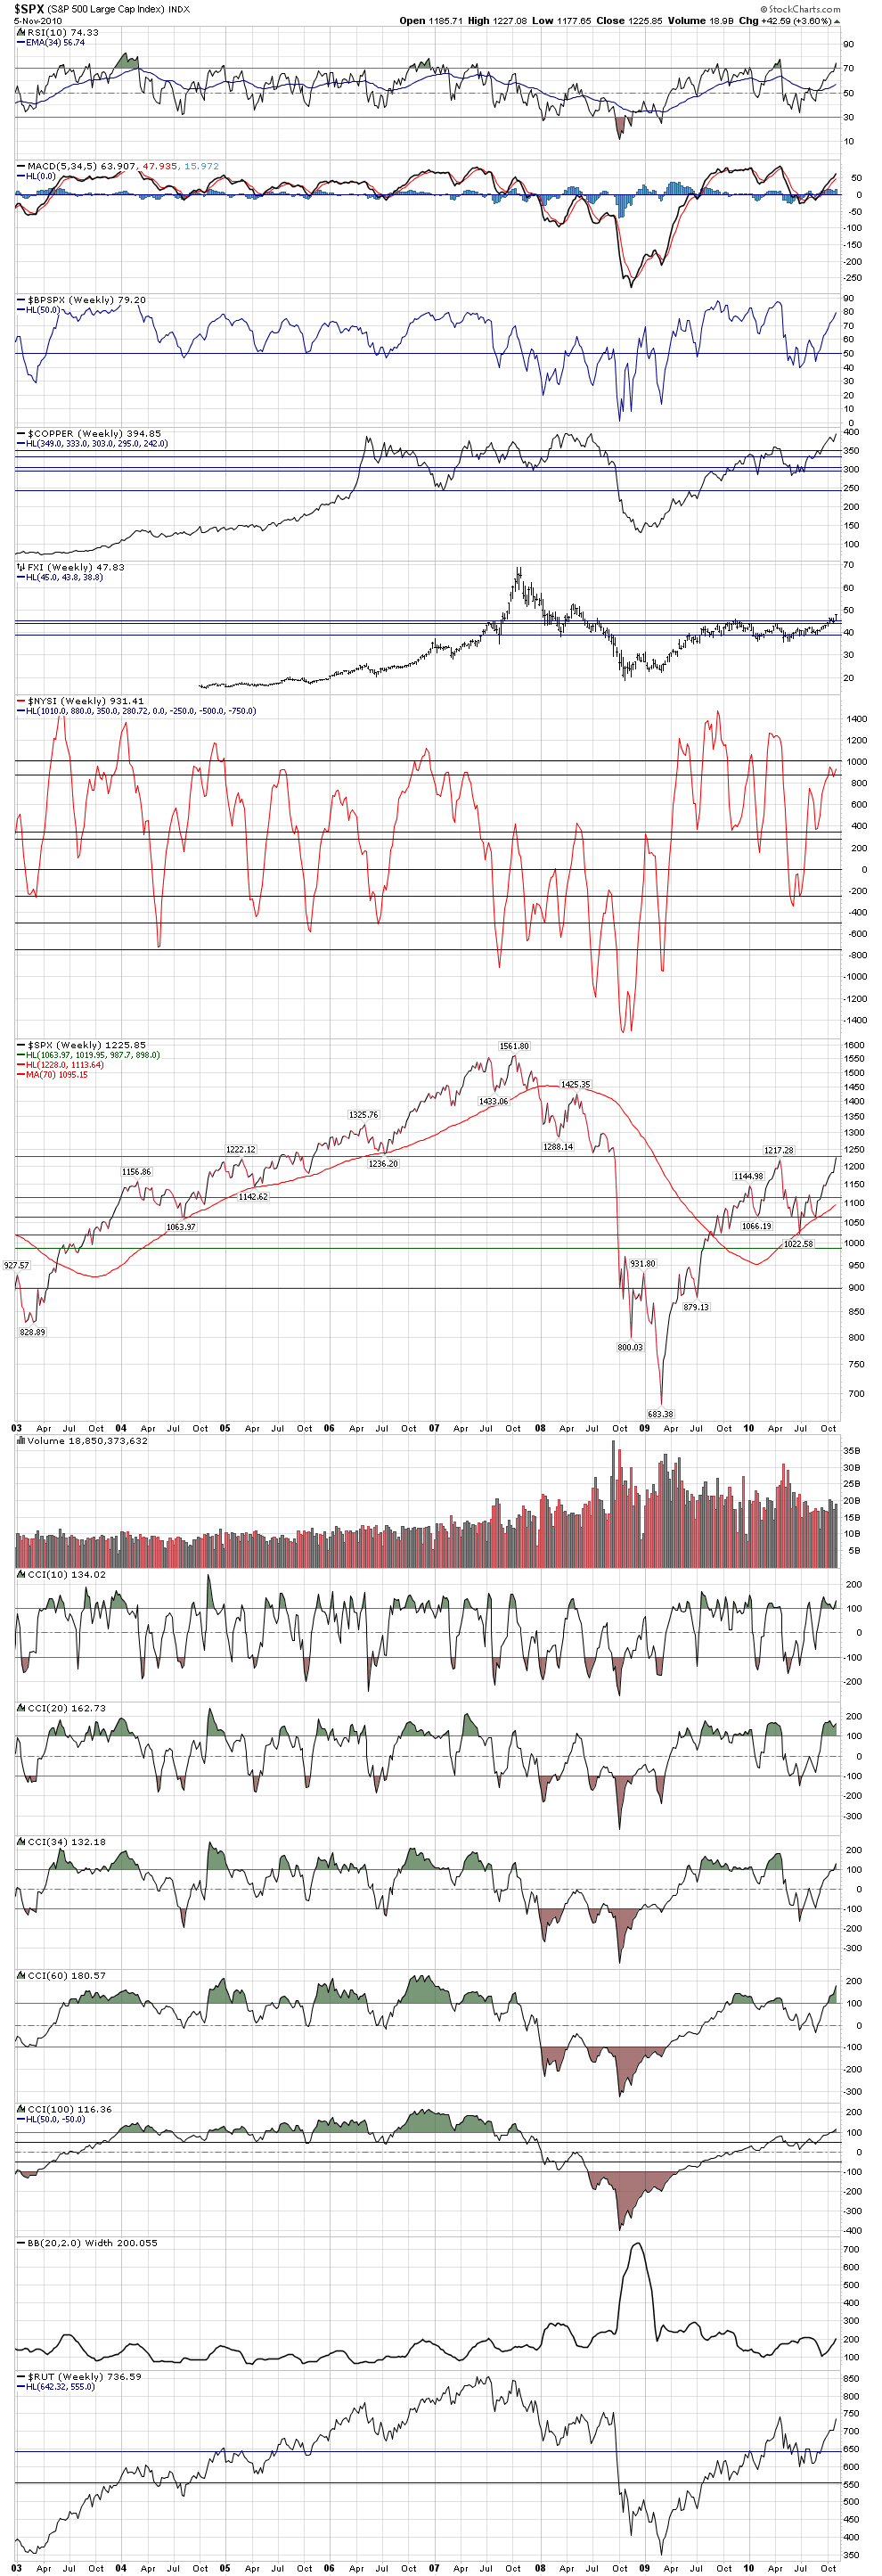 Name: SPX_weekly_closes_watching_$1228_and_$1063.97_-_Nov._5,_2010.png, Views: 128, Size: 166.63 KB